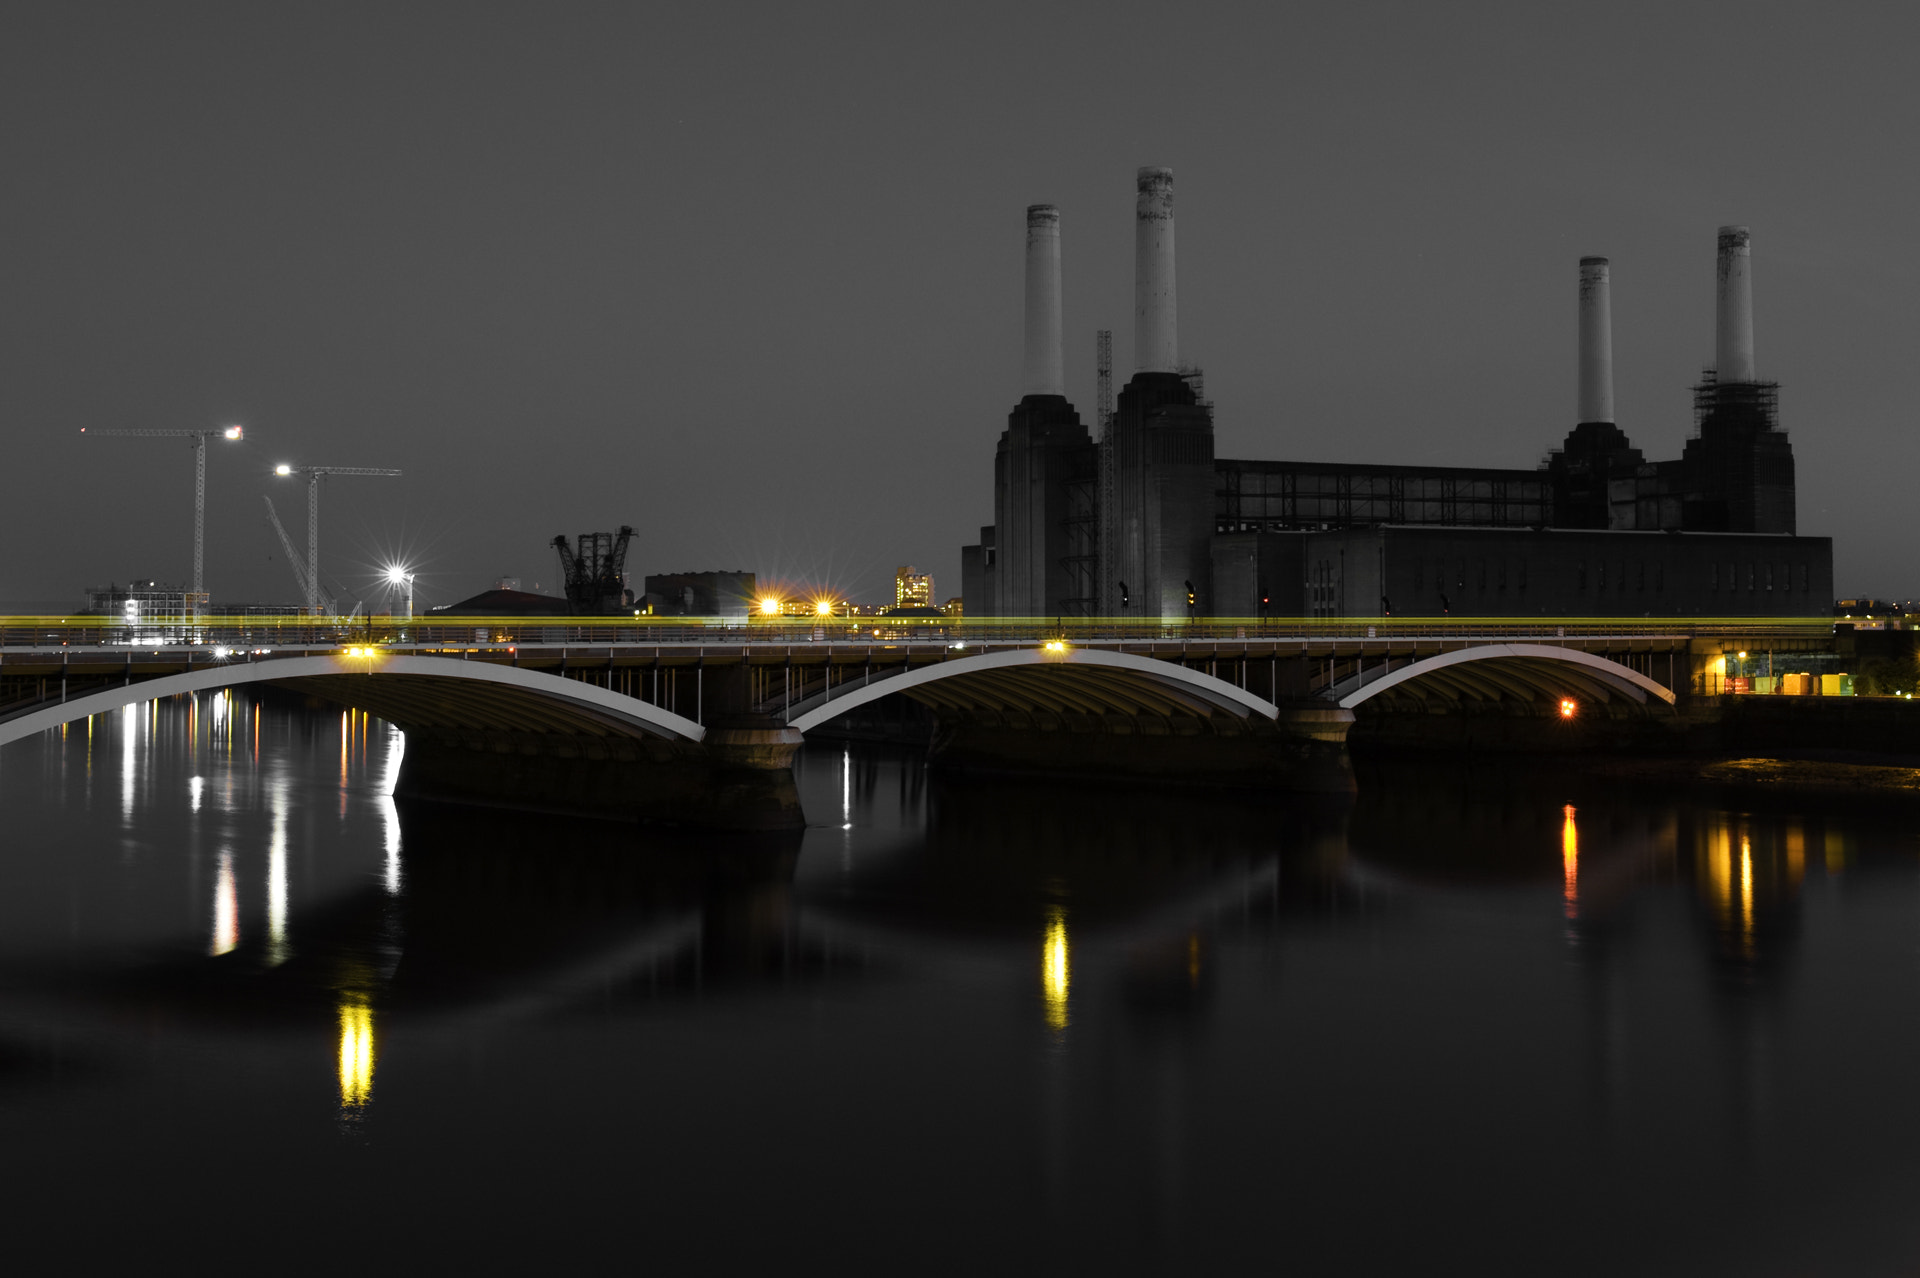 Photograph Busy Bridge by Hubert Mical on 500px